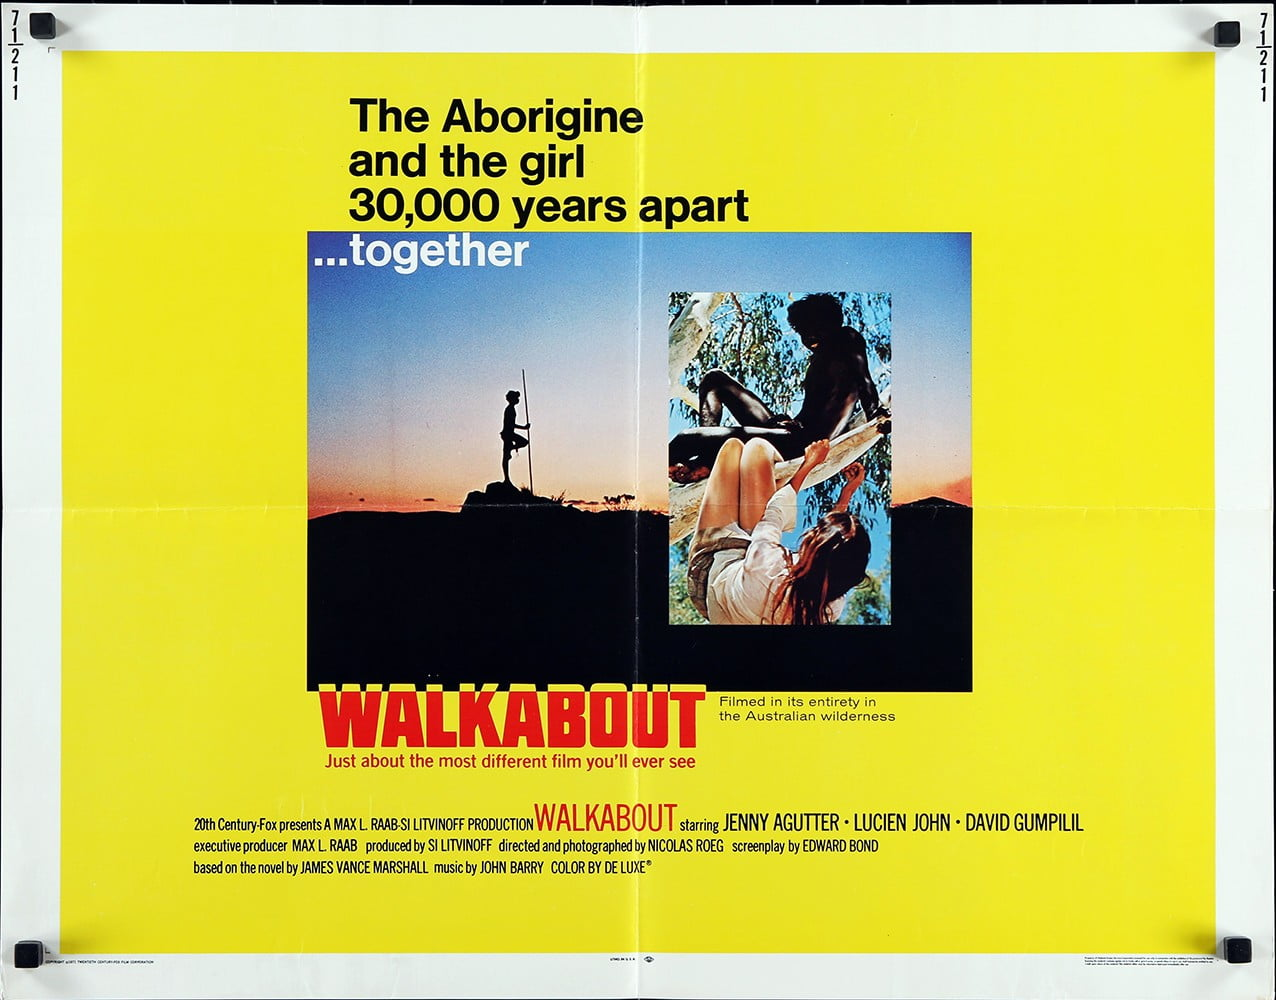 Walkabout6